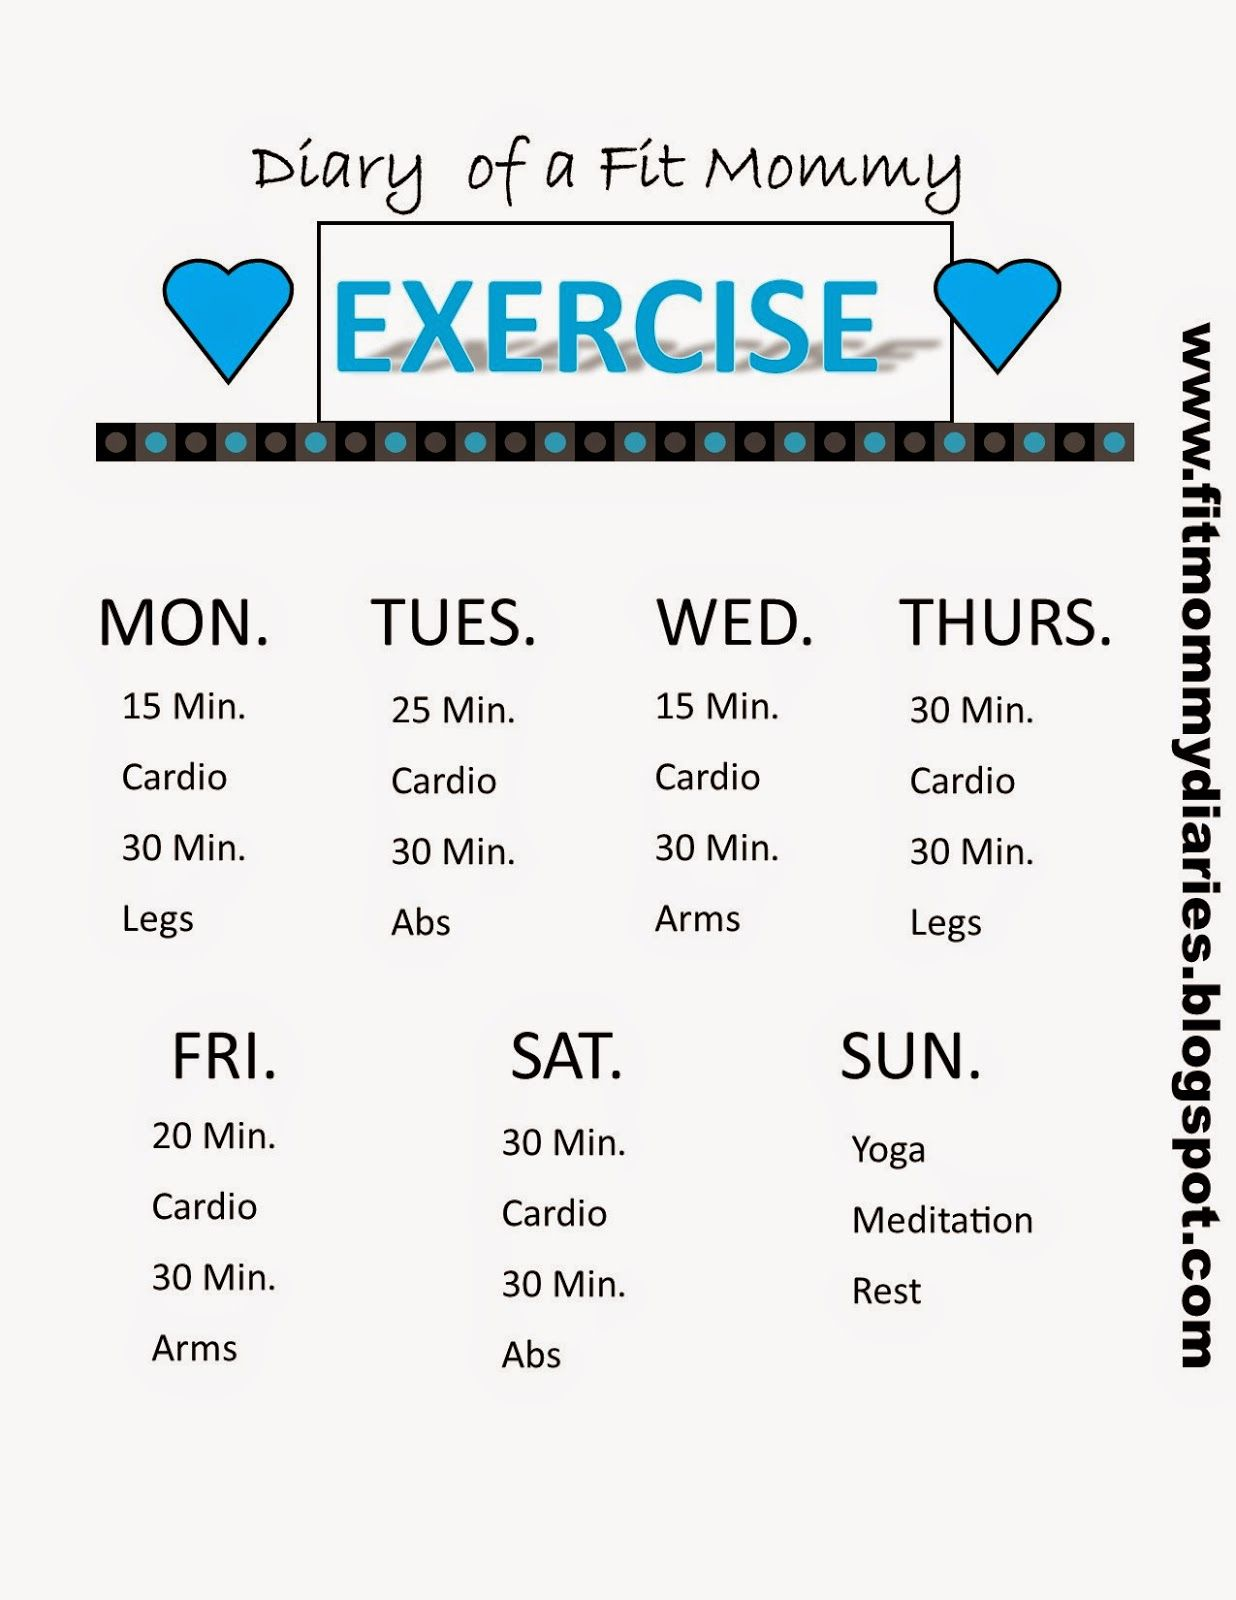 Your New Weekly Workout You Pick Diary Of A Fit Mommy